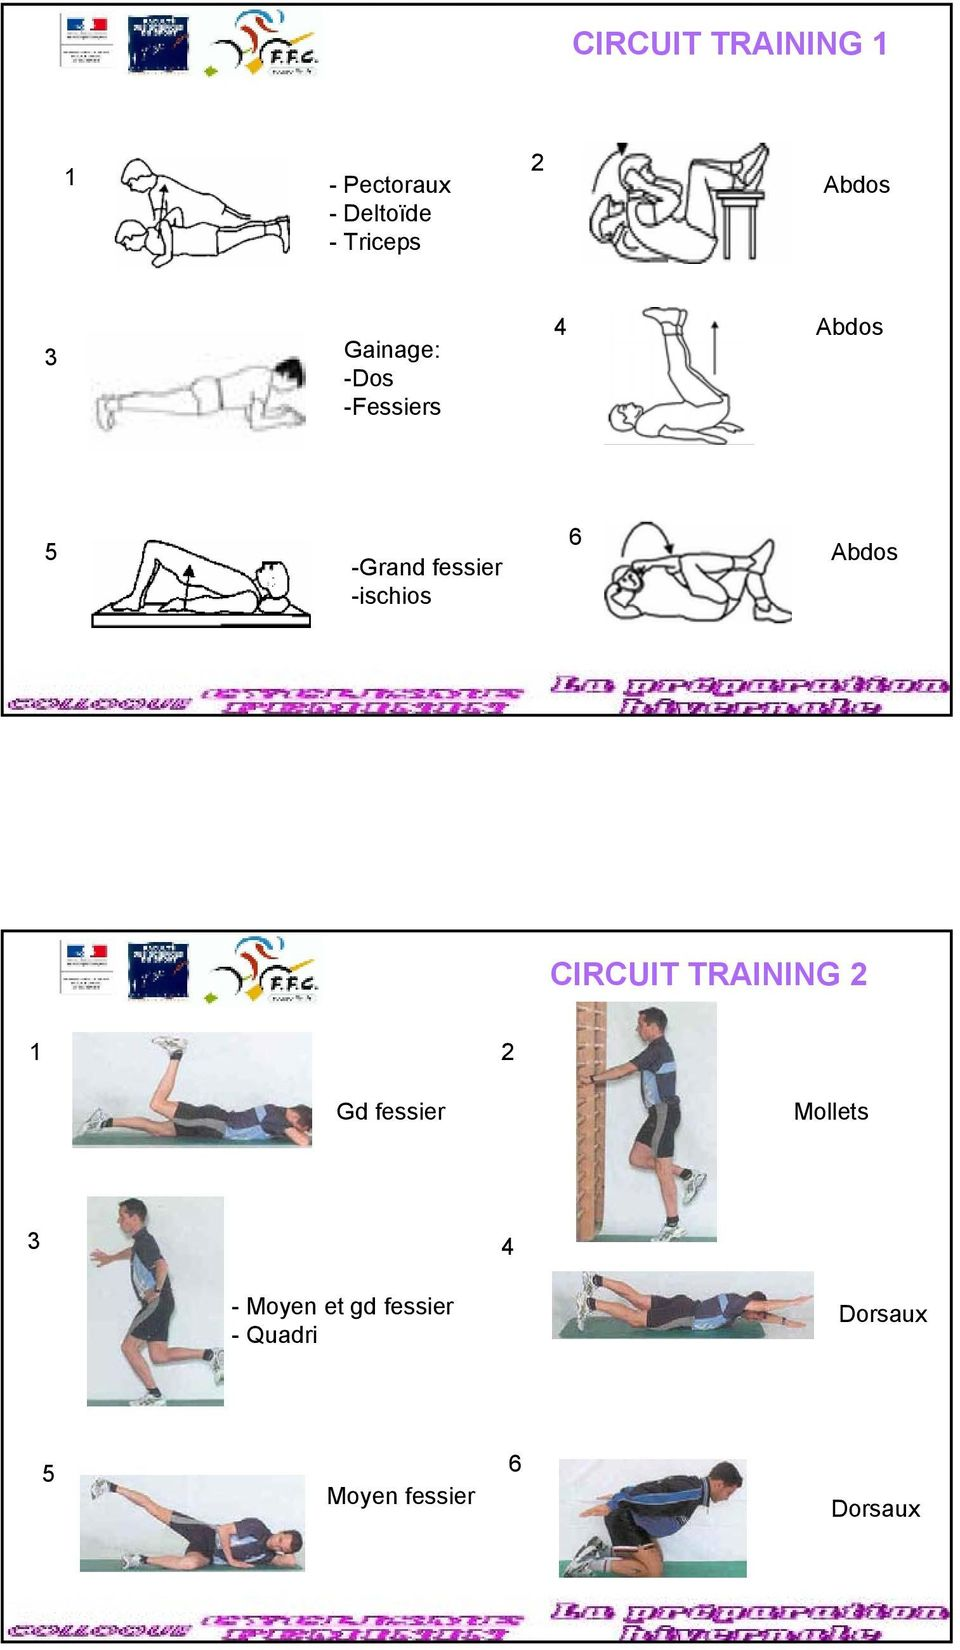 -ischios 6 Abdos CIRCUIT TRAINING 2 1 2 Gd fessier Mollets